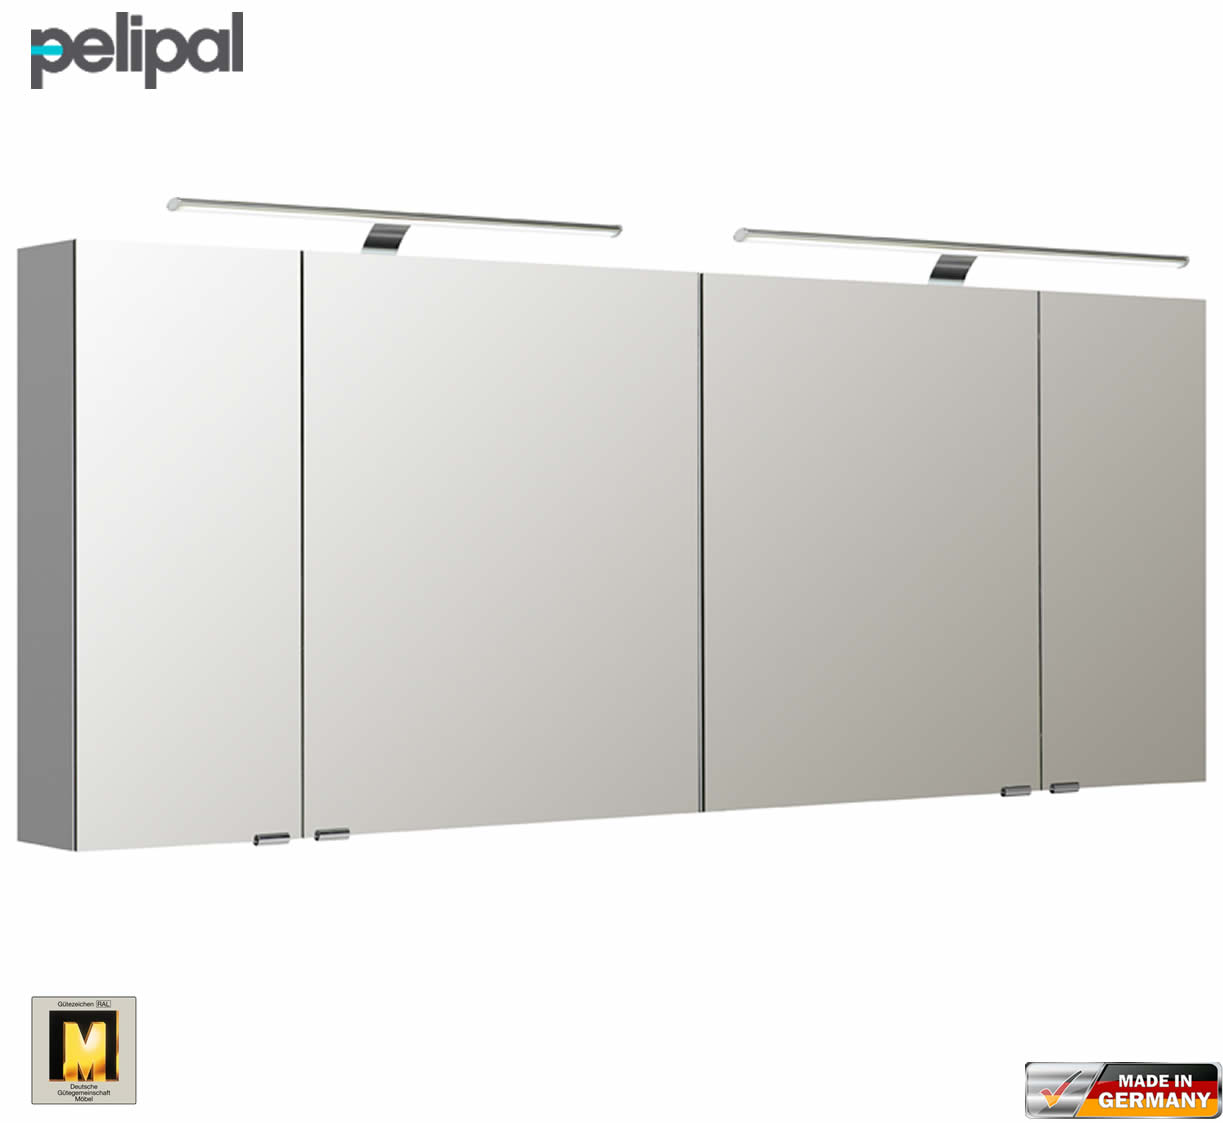 pelipal neutraler spiegelschrank s5 180 cm mit 2 led aufbauleuchten impulsbad. Black Bedroom Furniture Sets. Home Design Ideas